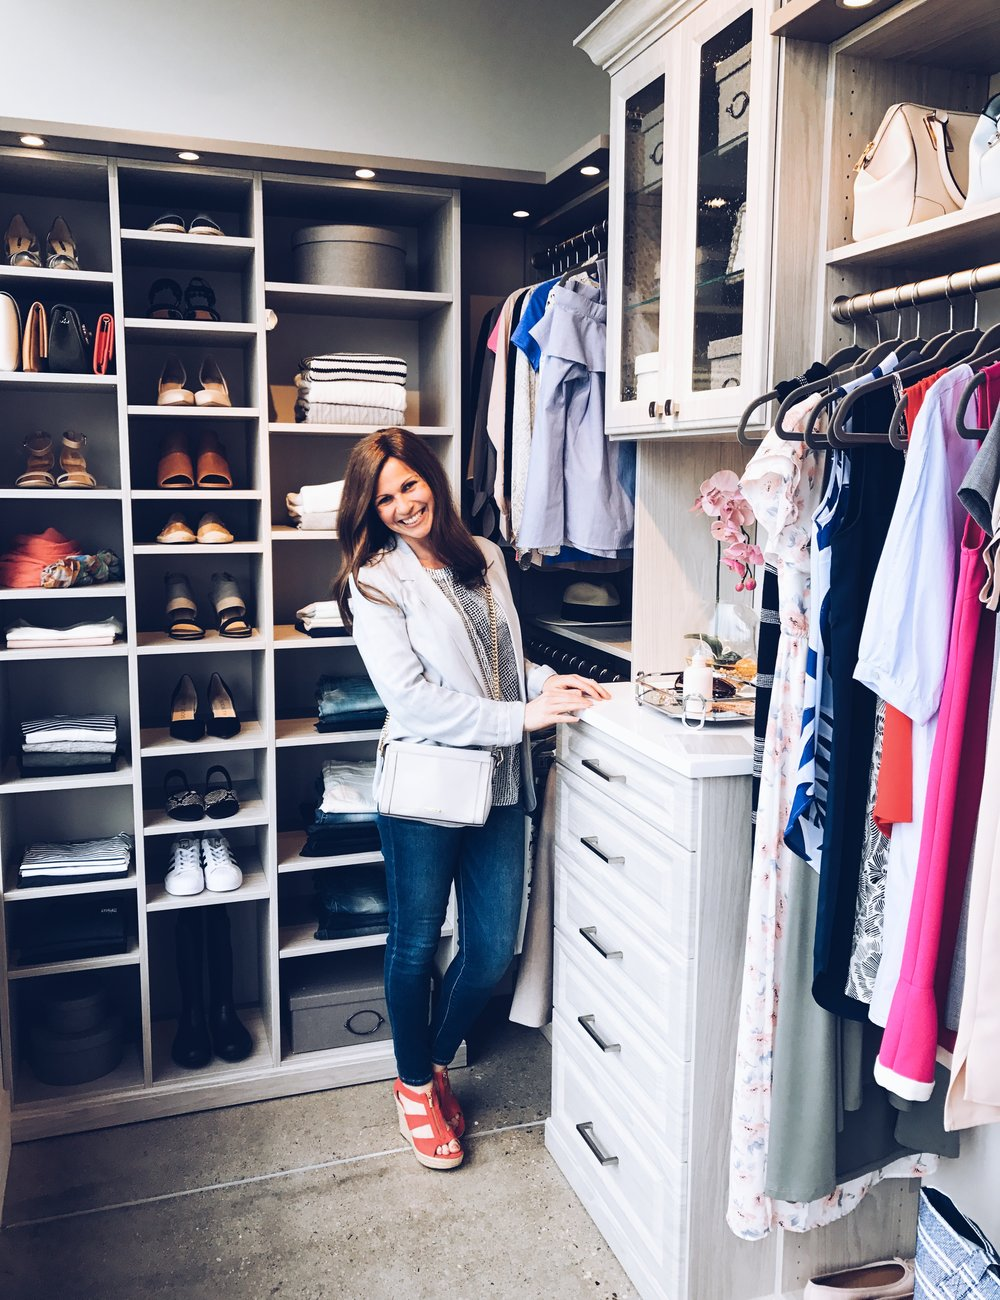 Inspired Closets Design Process